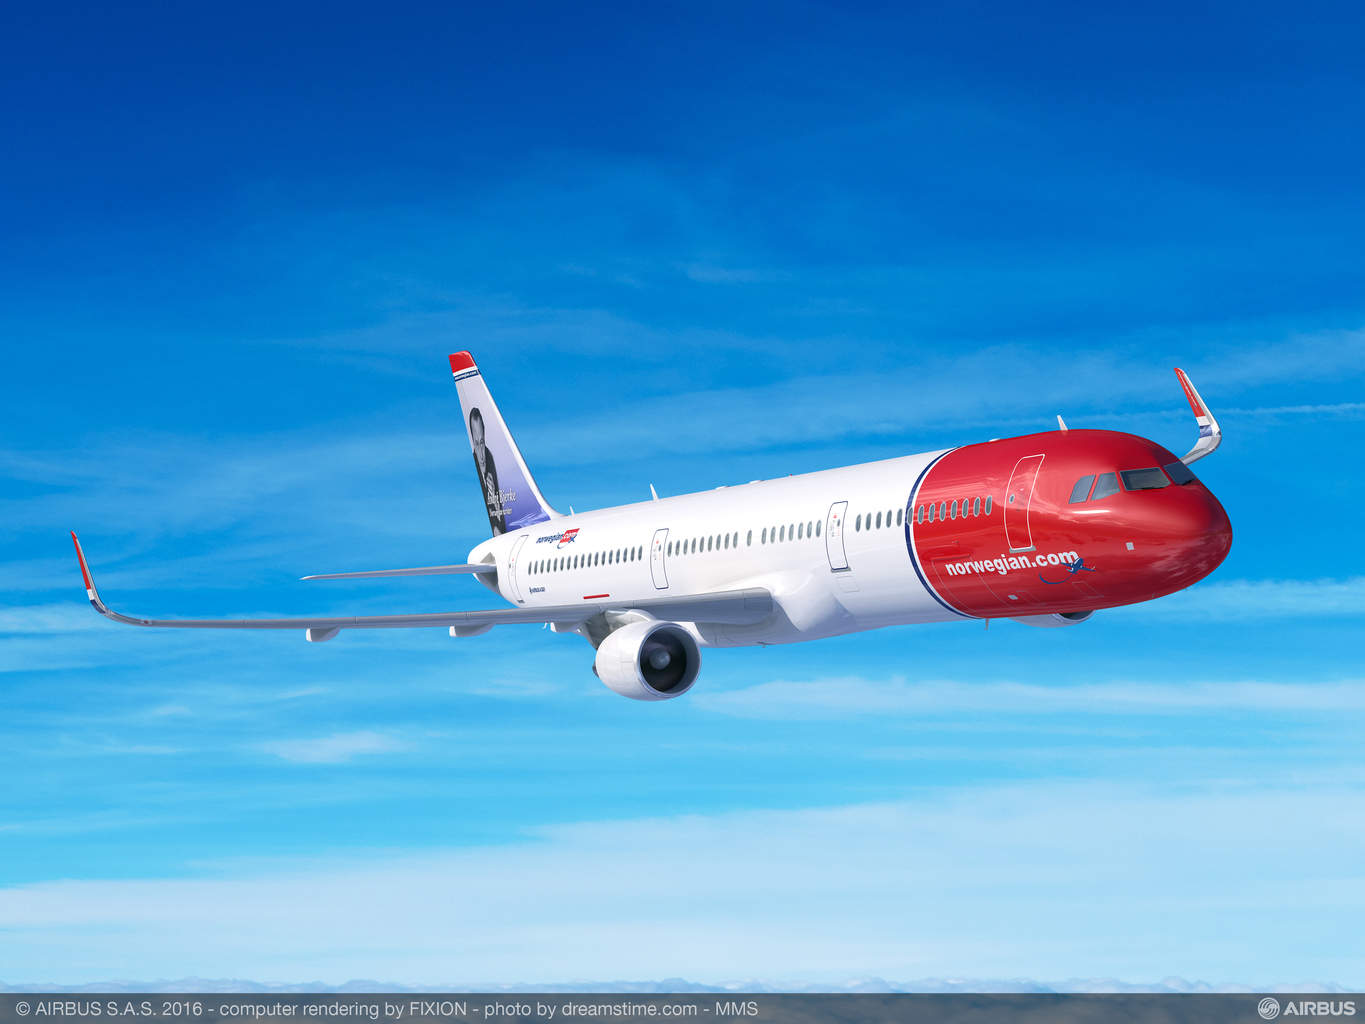 Norwegian Air Shuttle converts 30 A320NEO orders into 30 A321LR orders